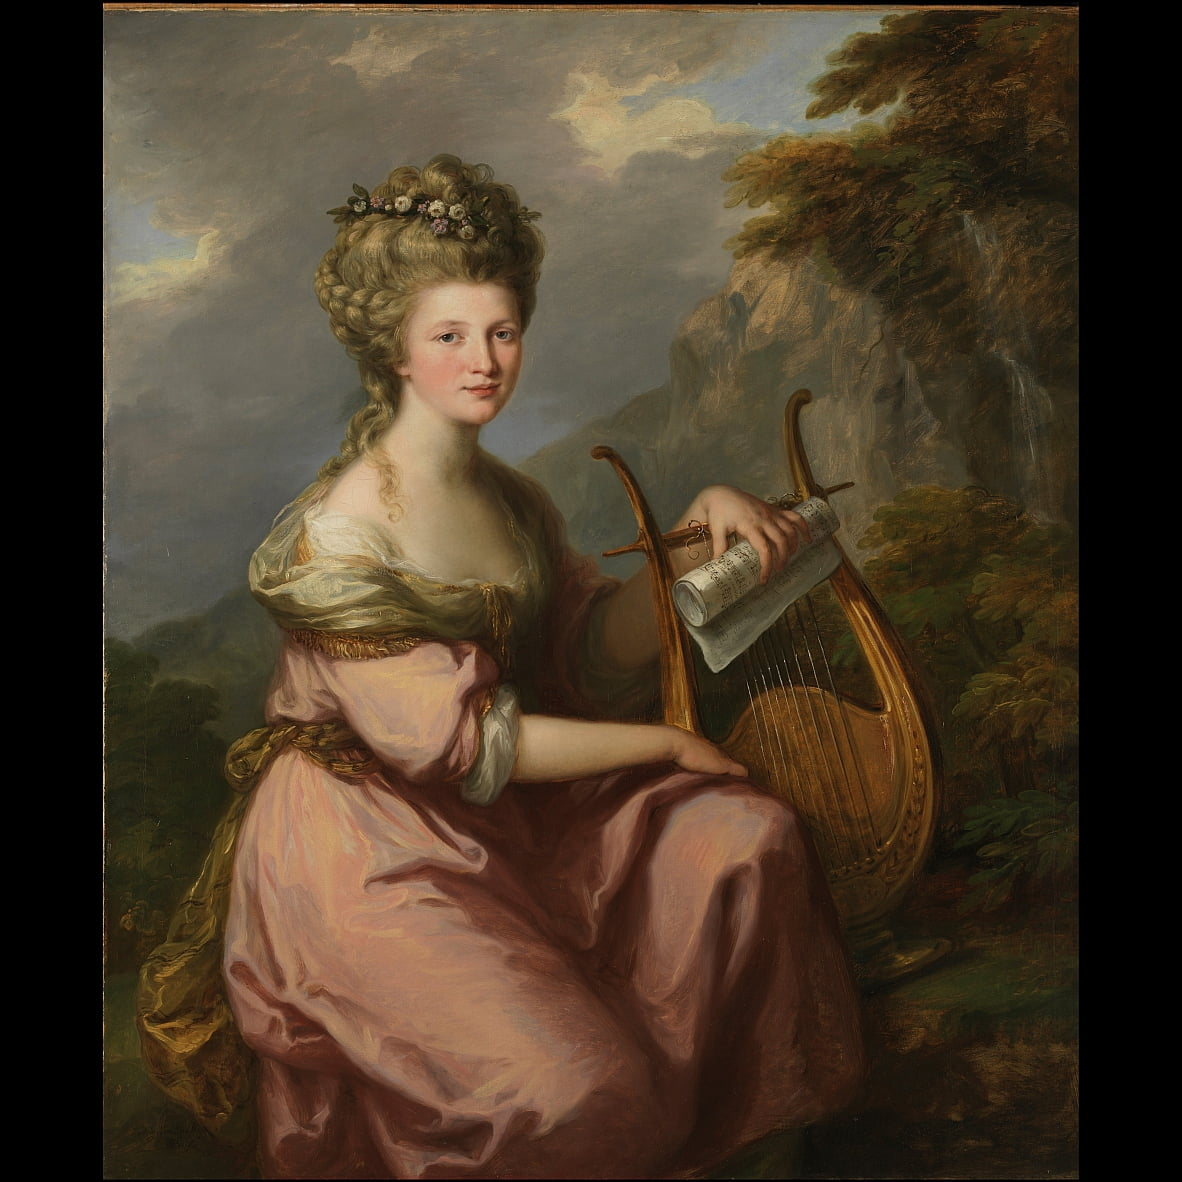 Portrait of Sarah Harrop (Mrs. Bates) as a Muse by Angelica Kauffmann